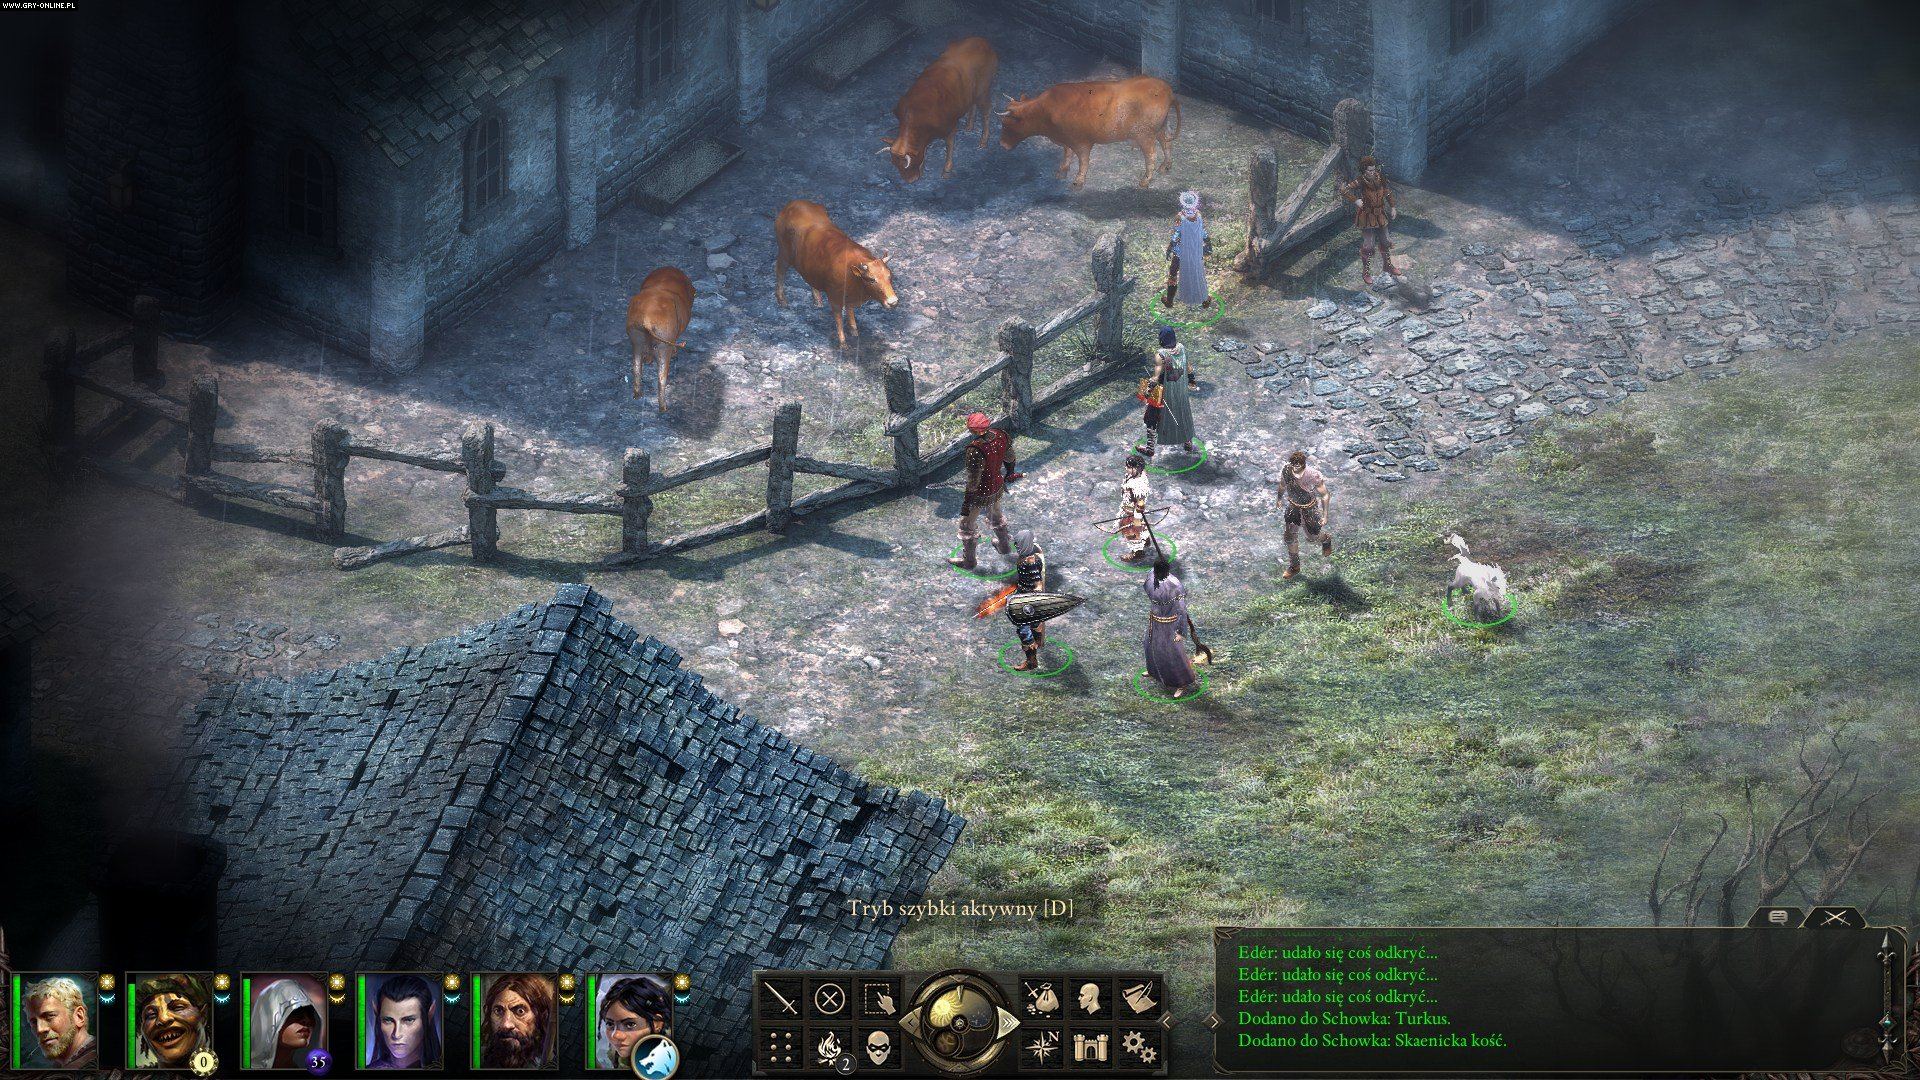 Pillars of Eternity PC Gry Screen 9/93, Obsidian Entertainment, Paradox Interactive